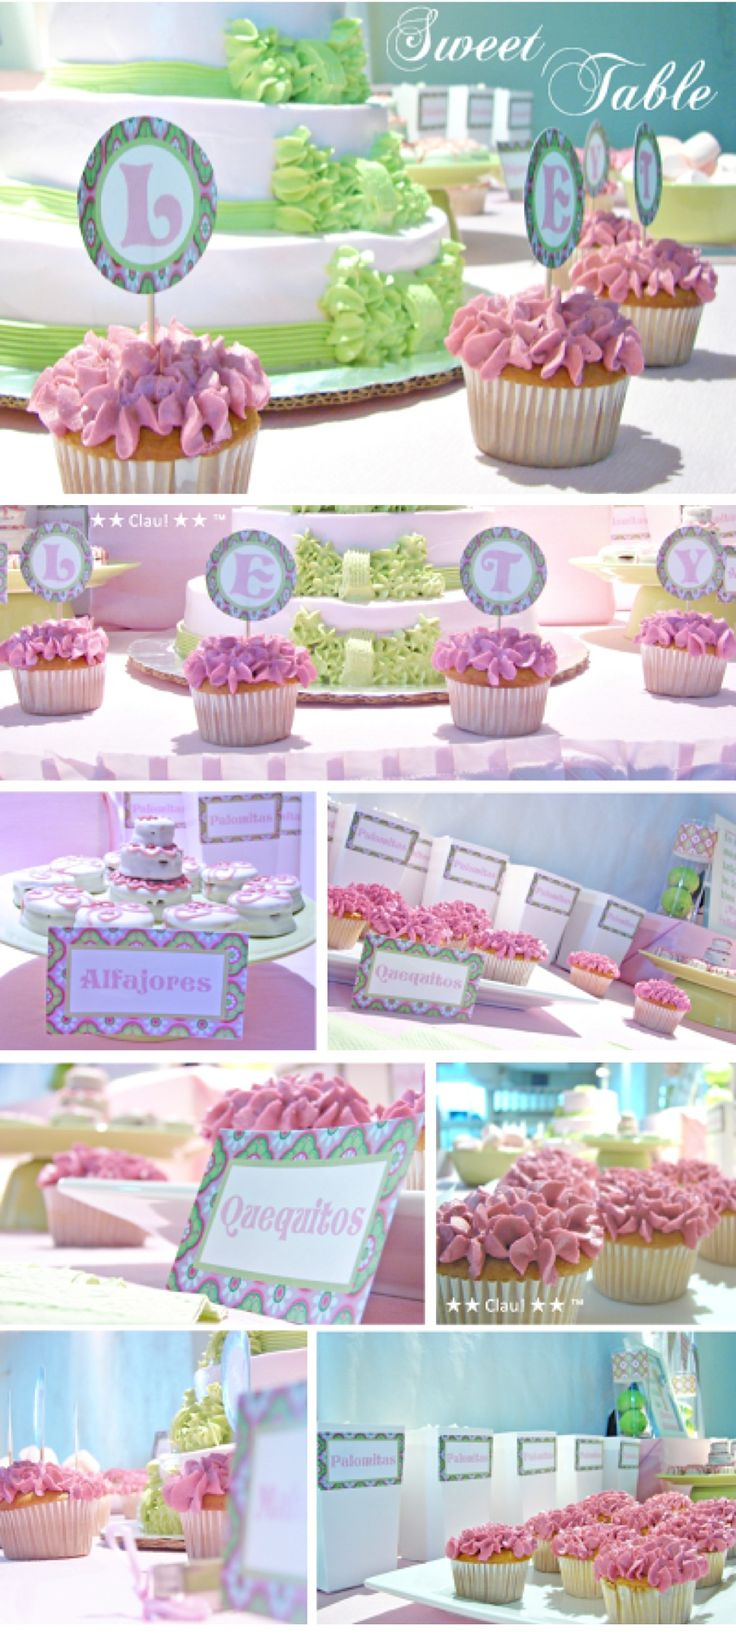 pink and green dessert table could work as a baby shower theme